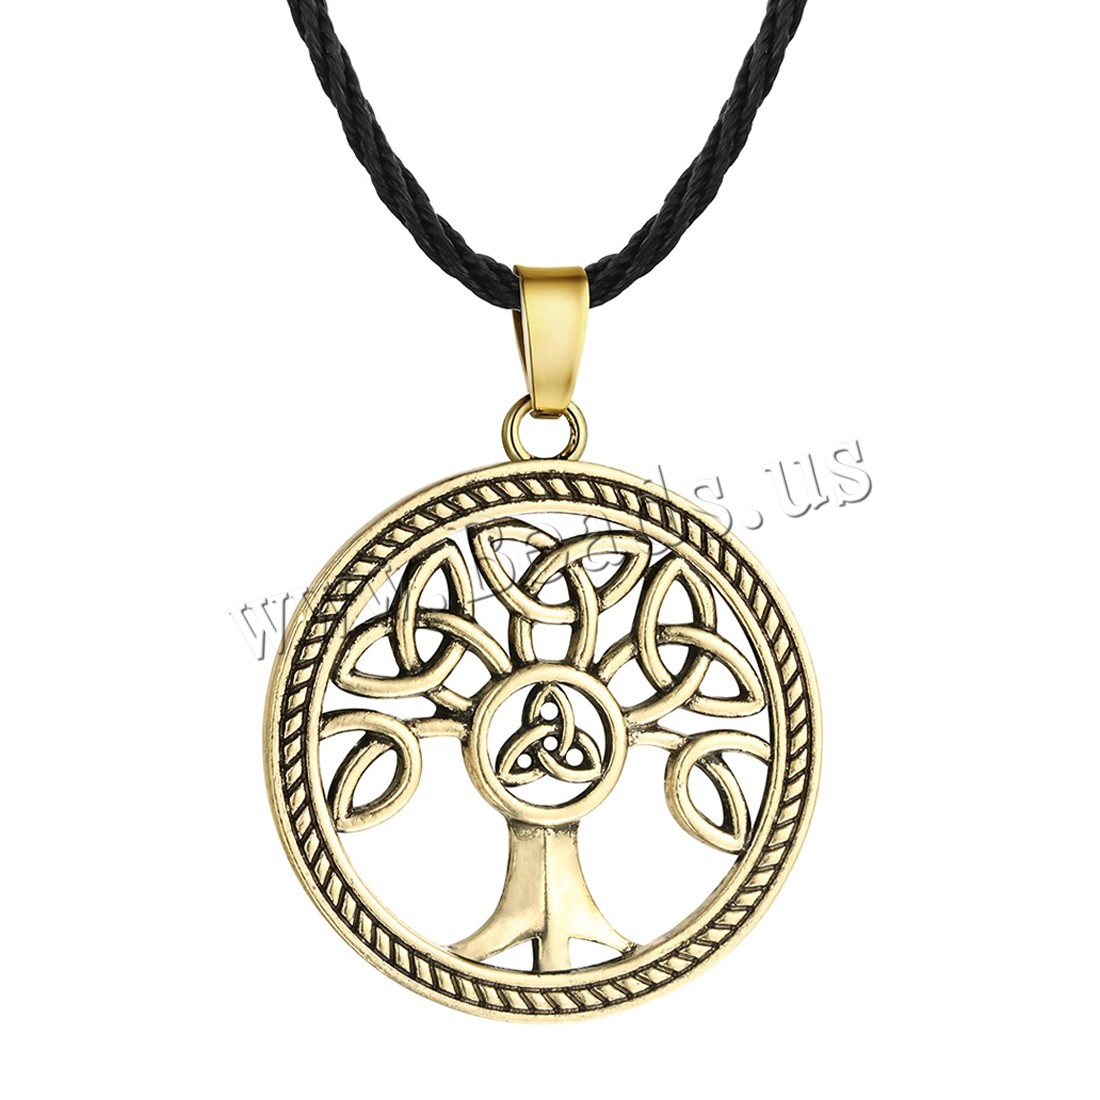 Buy Tree Life Necklace Zinc Alloy Waxed Linen Cord 5cm extender chain Flat Round plated tree life design & man colors choice lead & cadmium free 450mm Sold Per Approx 17.5 Strand